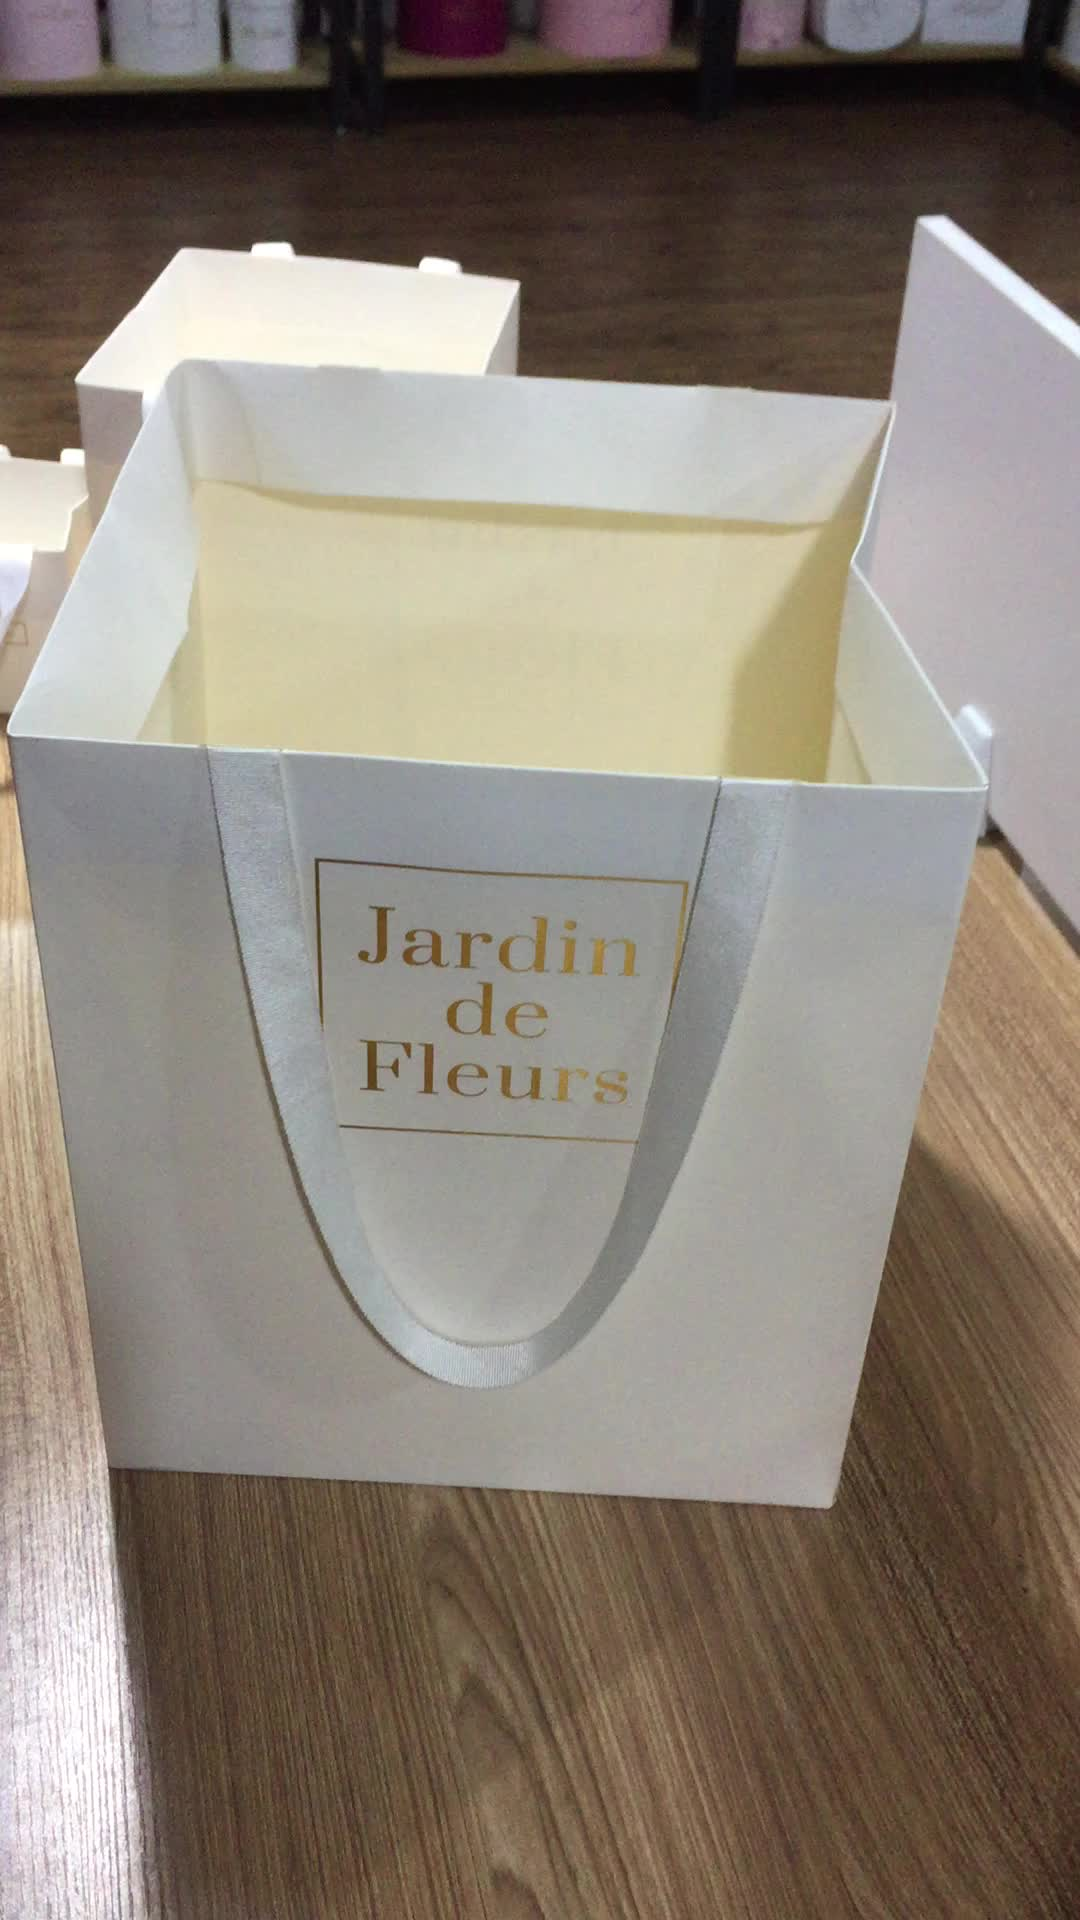 Paper Gift Bags Wholesale Wholesale Custom Designed Luxury Shopping Paper Bags Gift